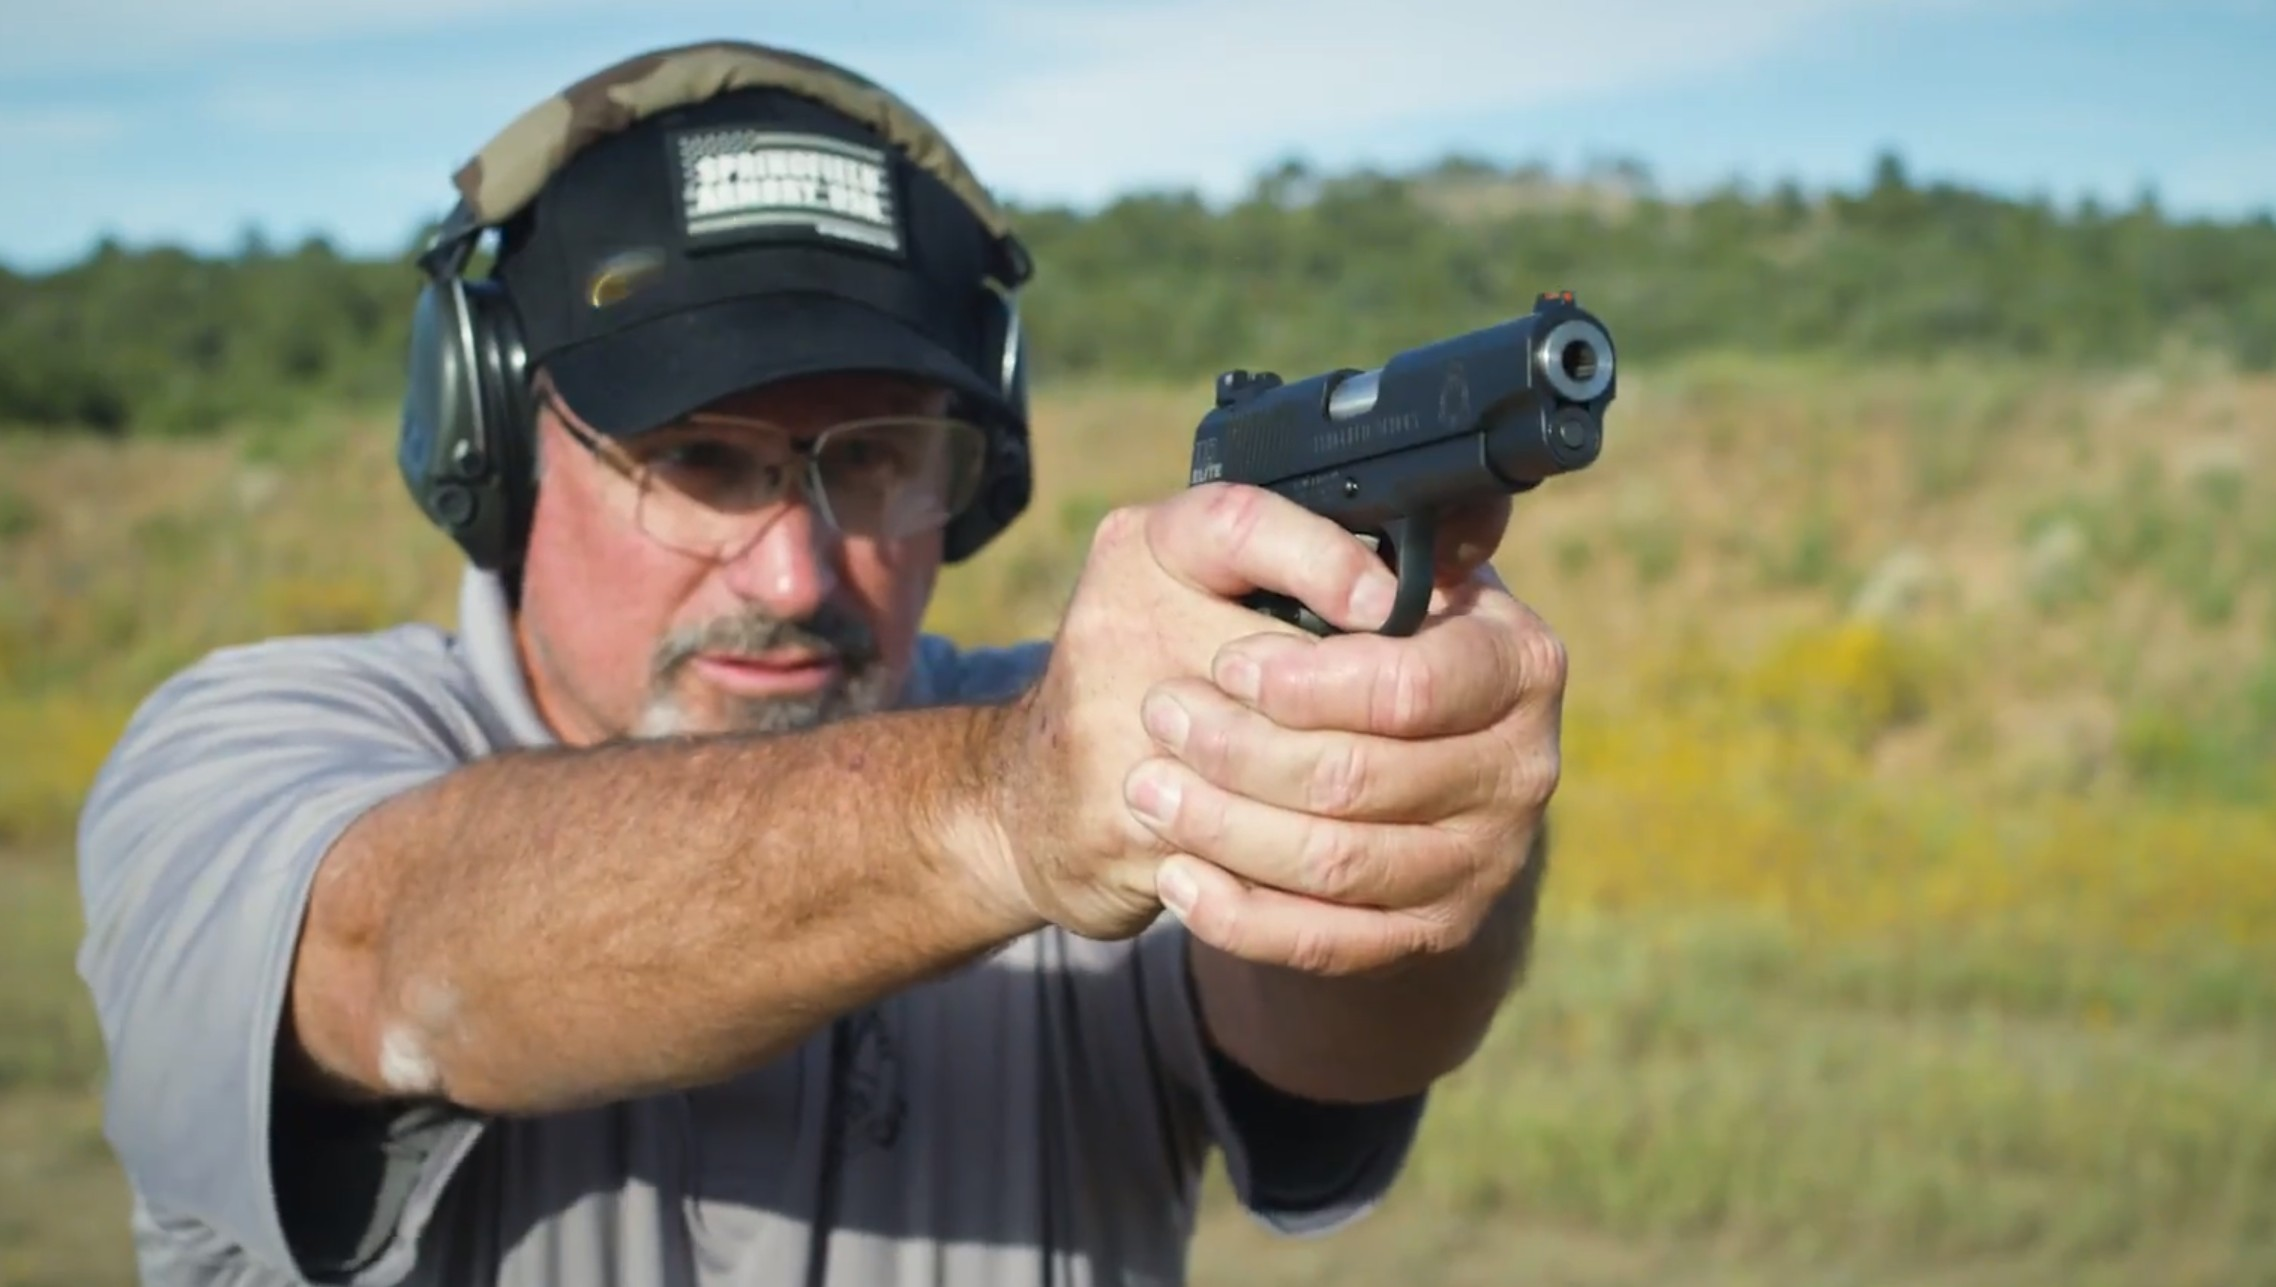 Springfield Armory RO Elite Series: A Bunch Of Beauties